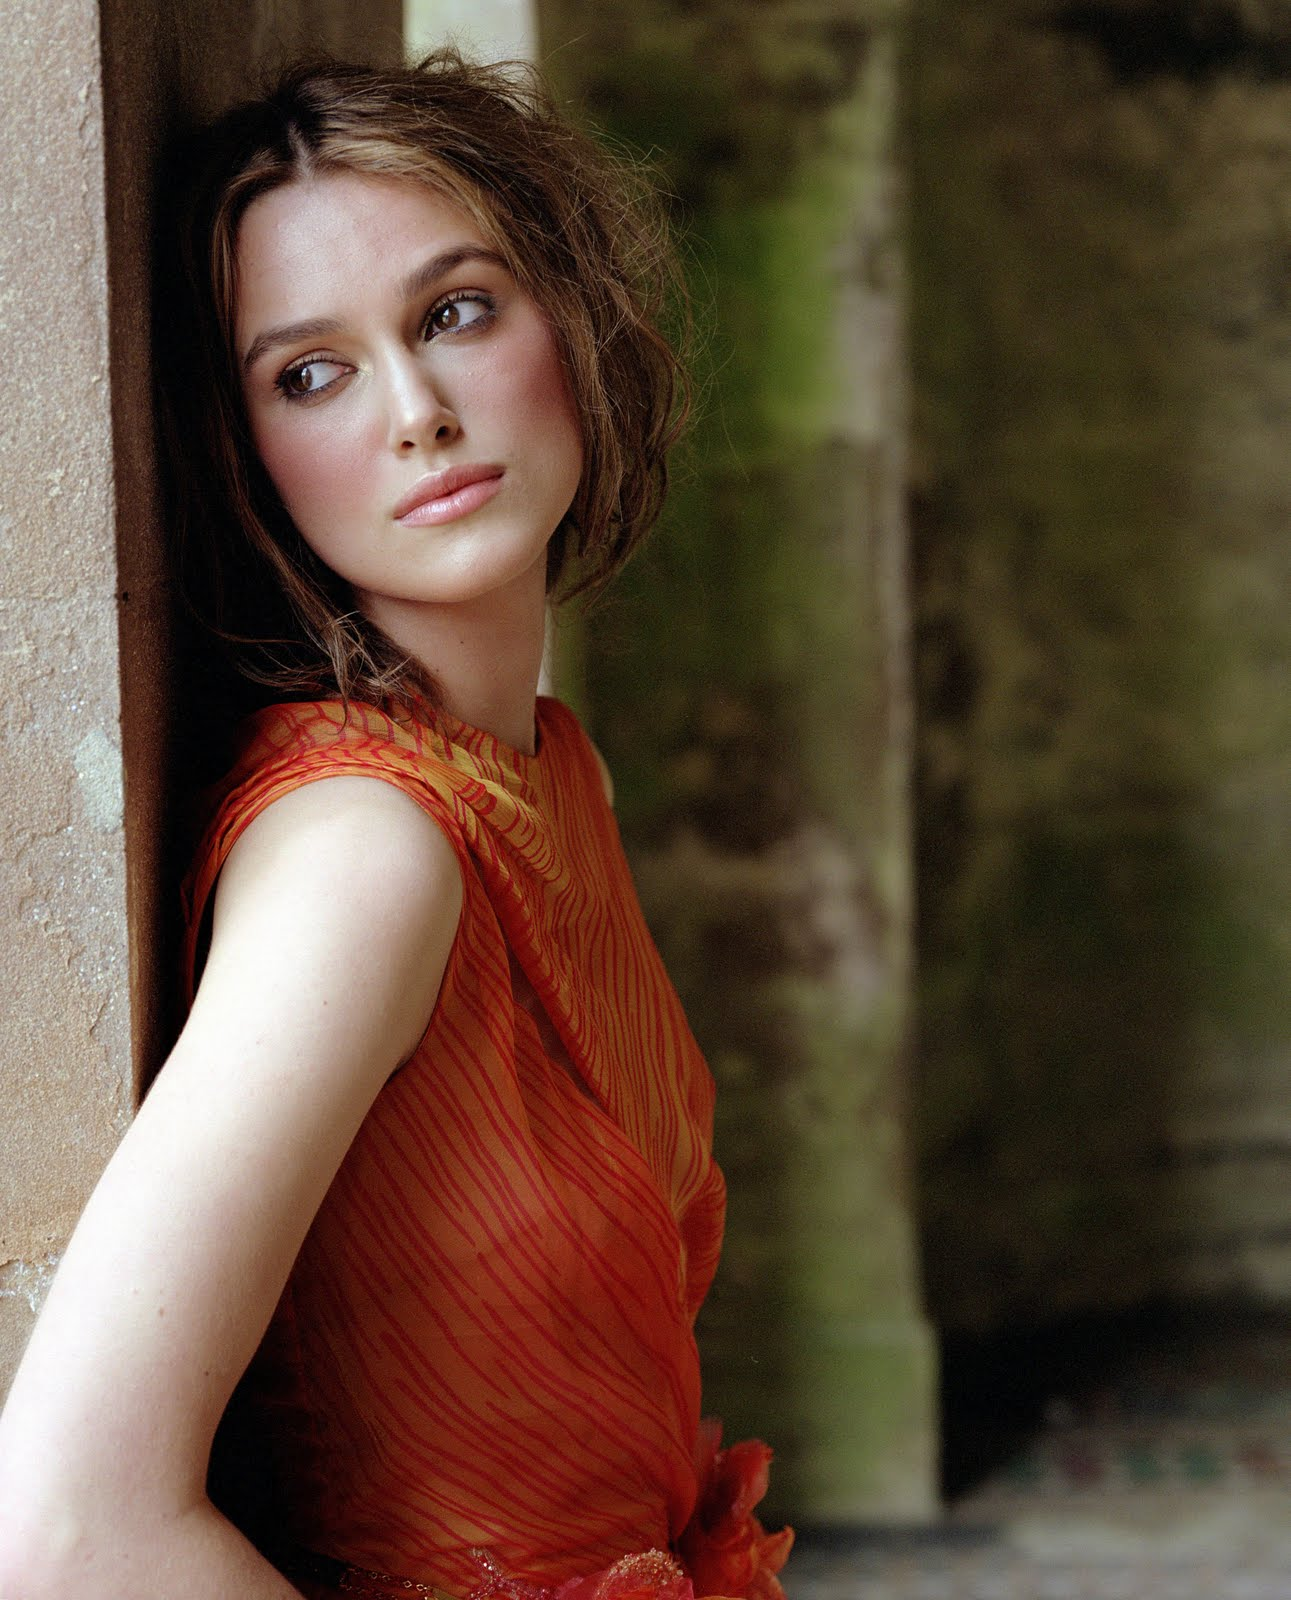 Keira Knightley (born 1985) nudes (49 photo), Pussy, Cleavage, Selfie, butt 2020